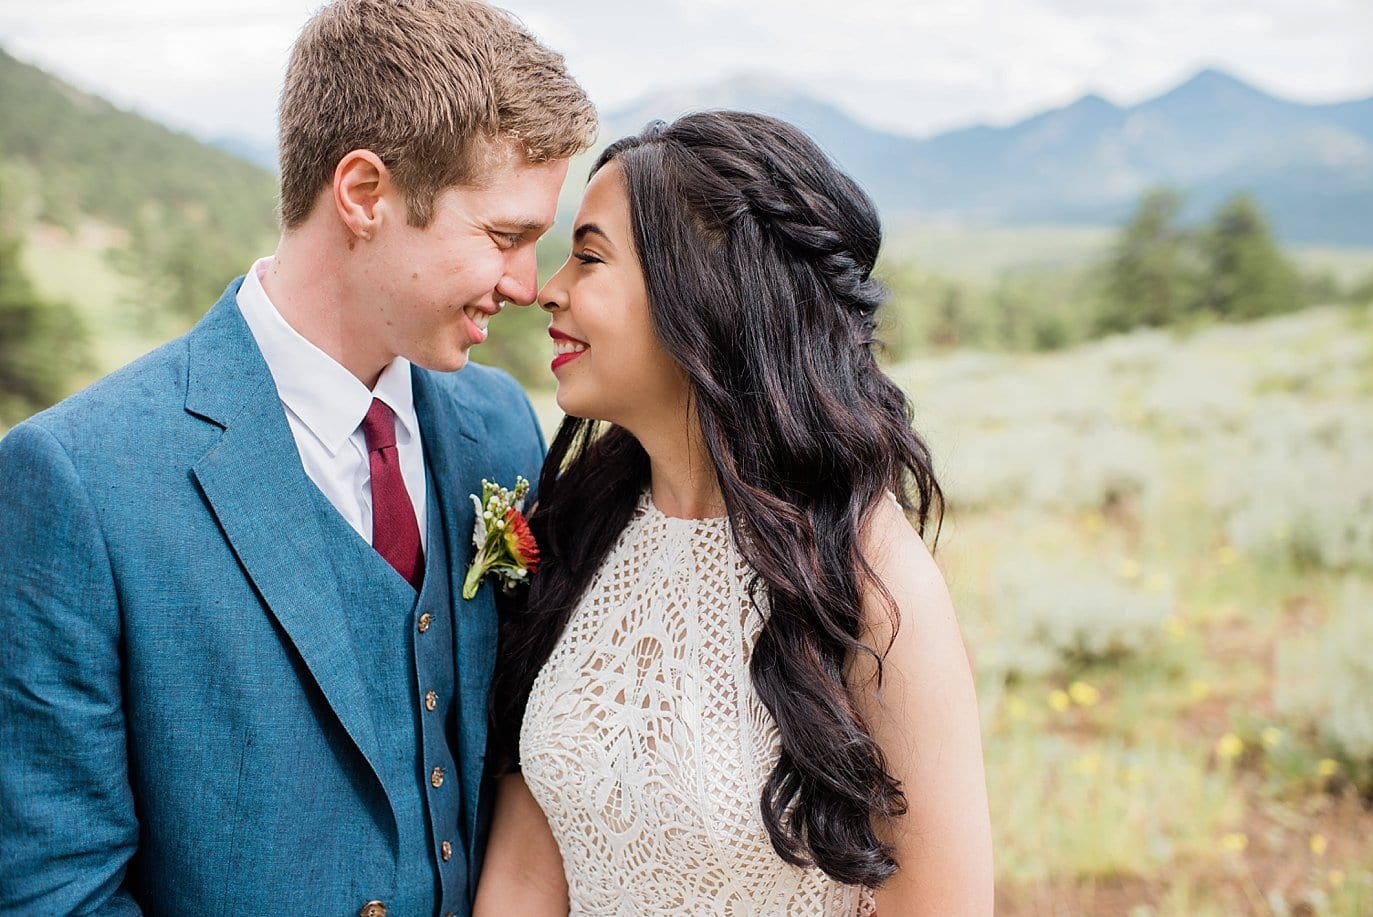 romantic bride and groom at Rocky Mountain National Park Wedding by Estes Park Wedding Photography Jennie Crate